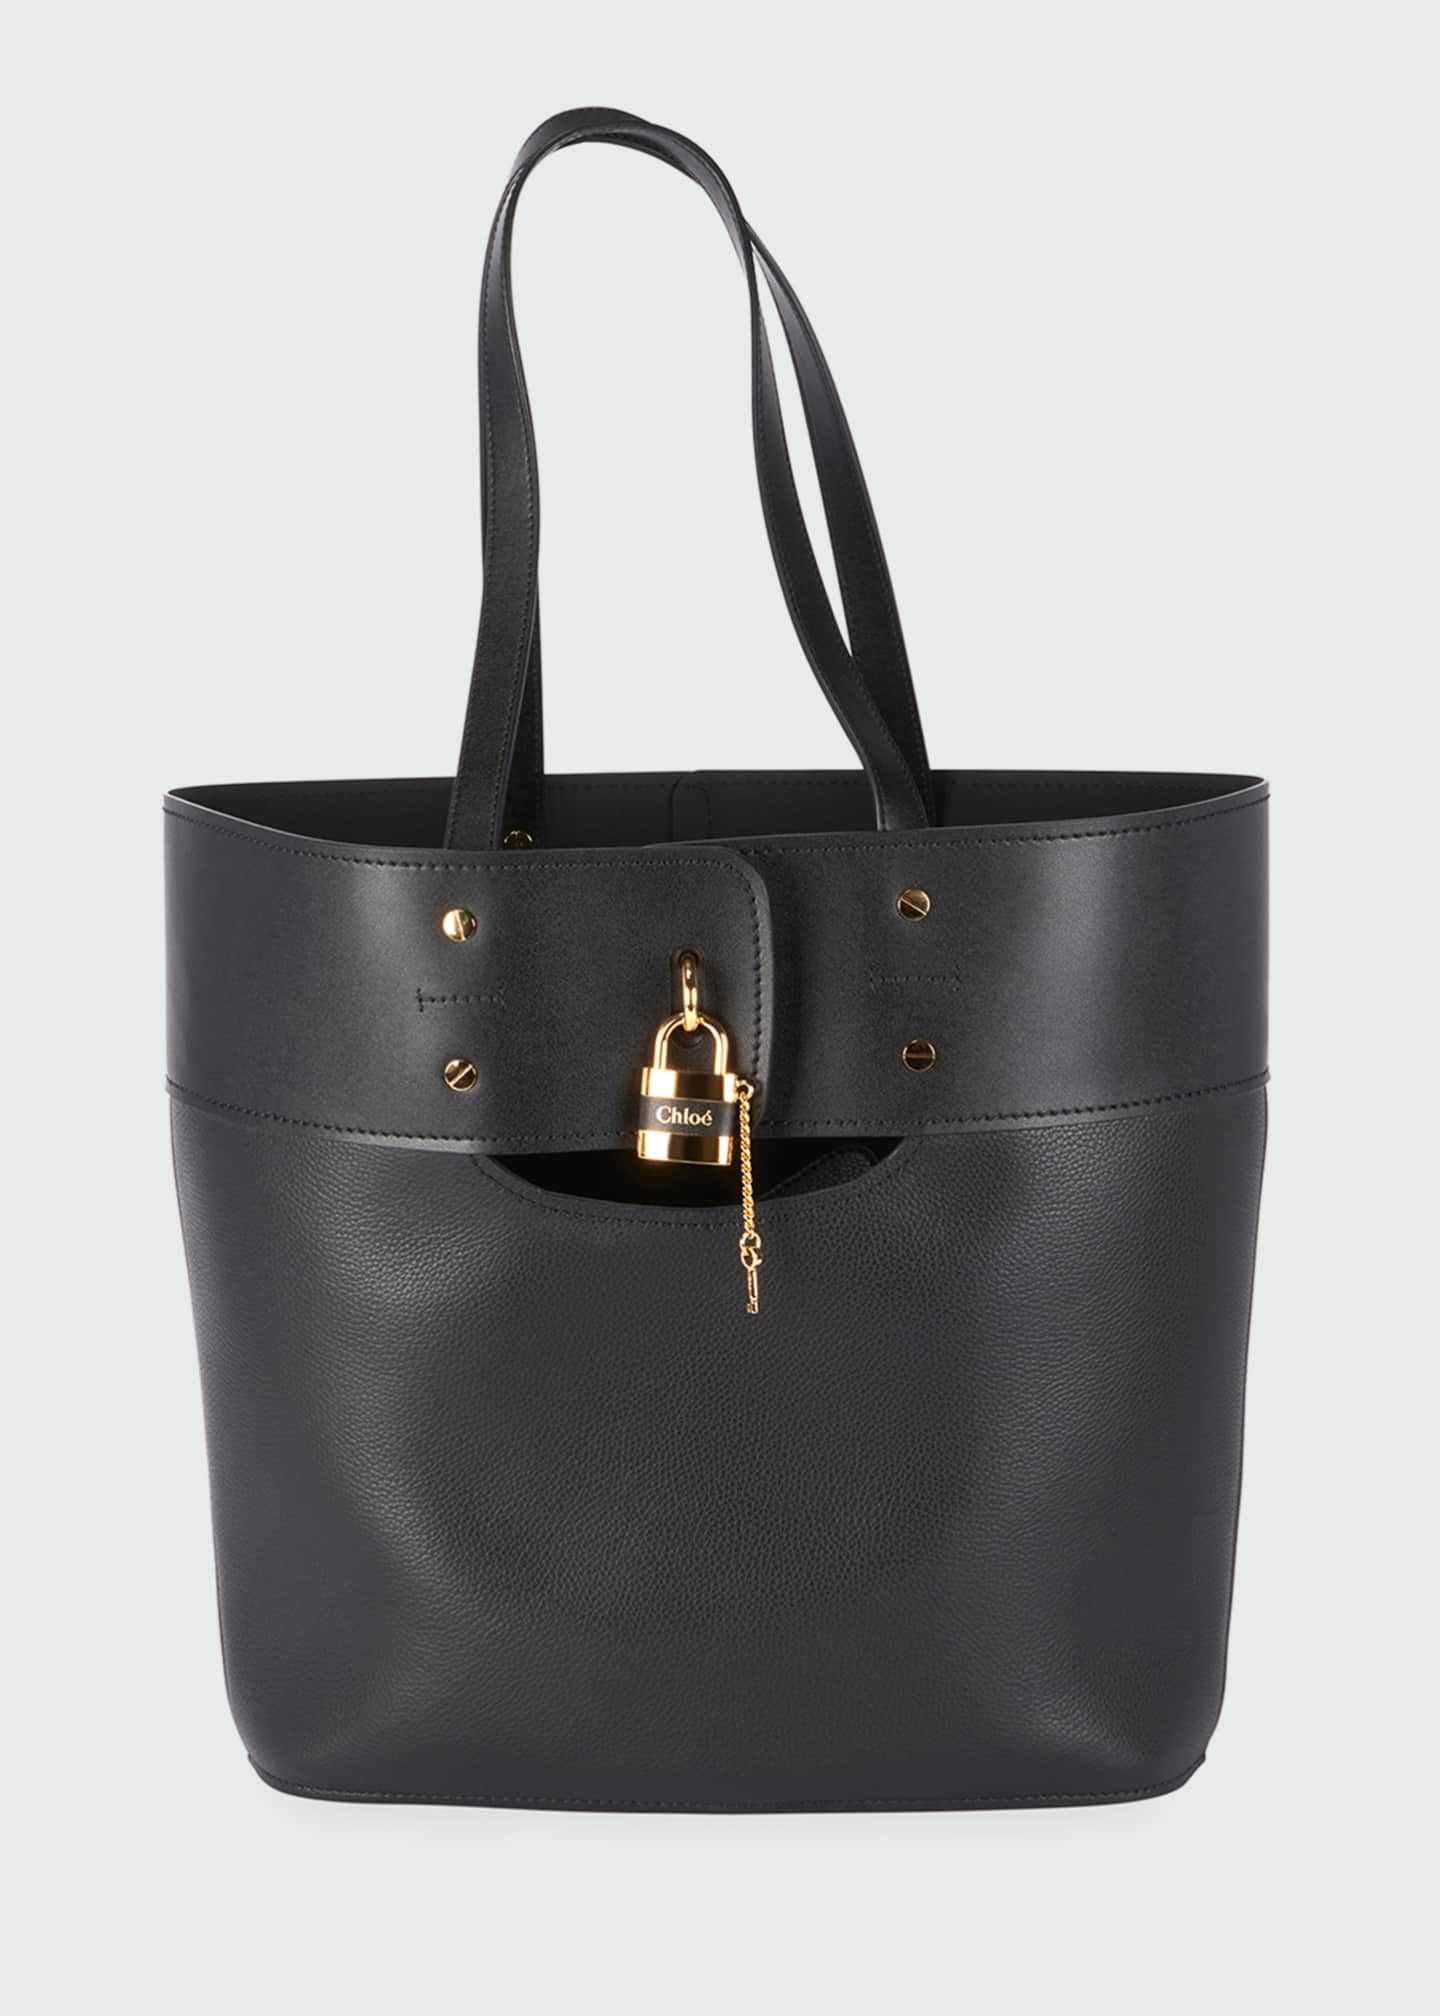 Chloe Aby Medium Tote Bag